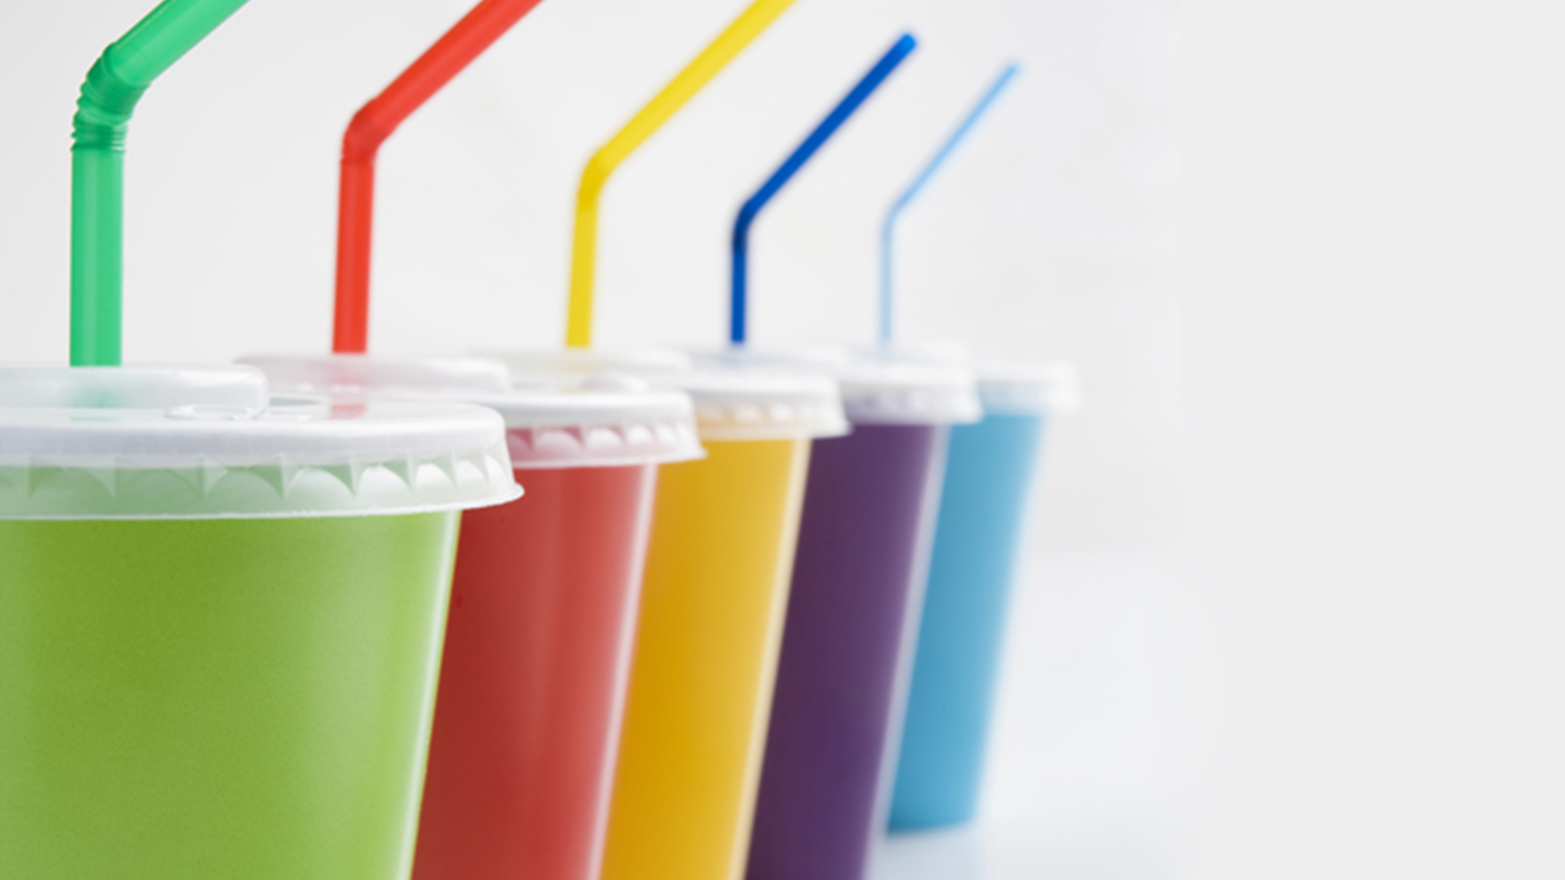 Row Of Plastic Soft Drink Cups With Straws